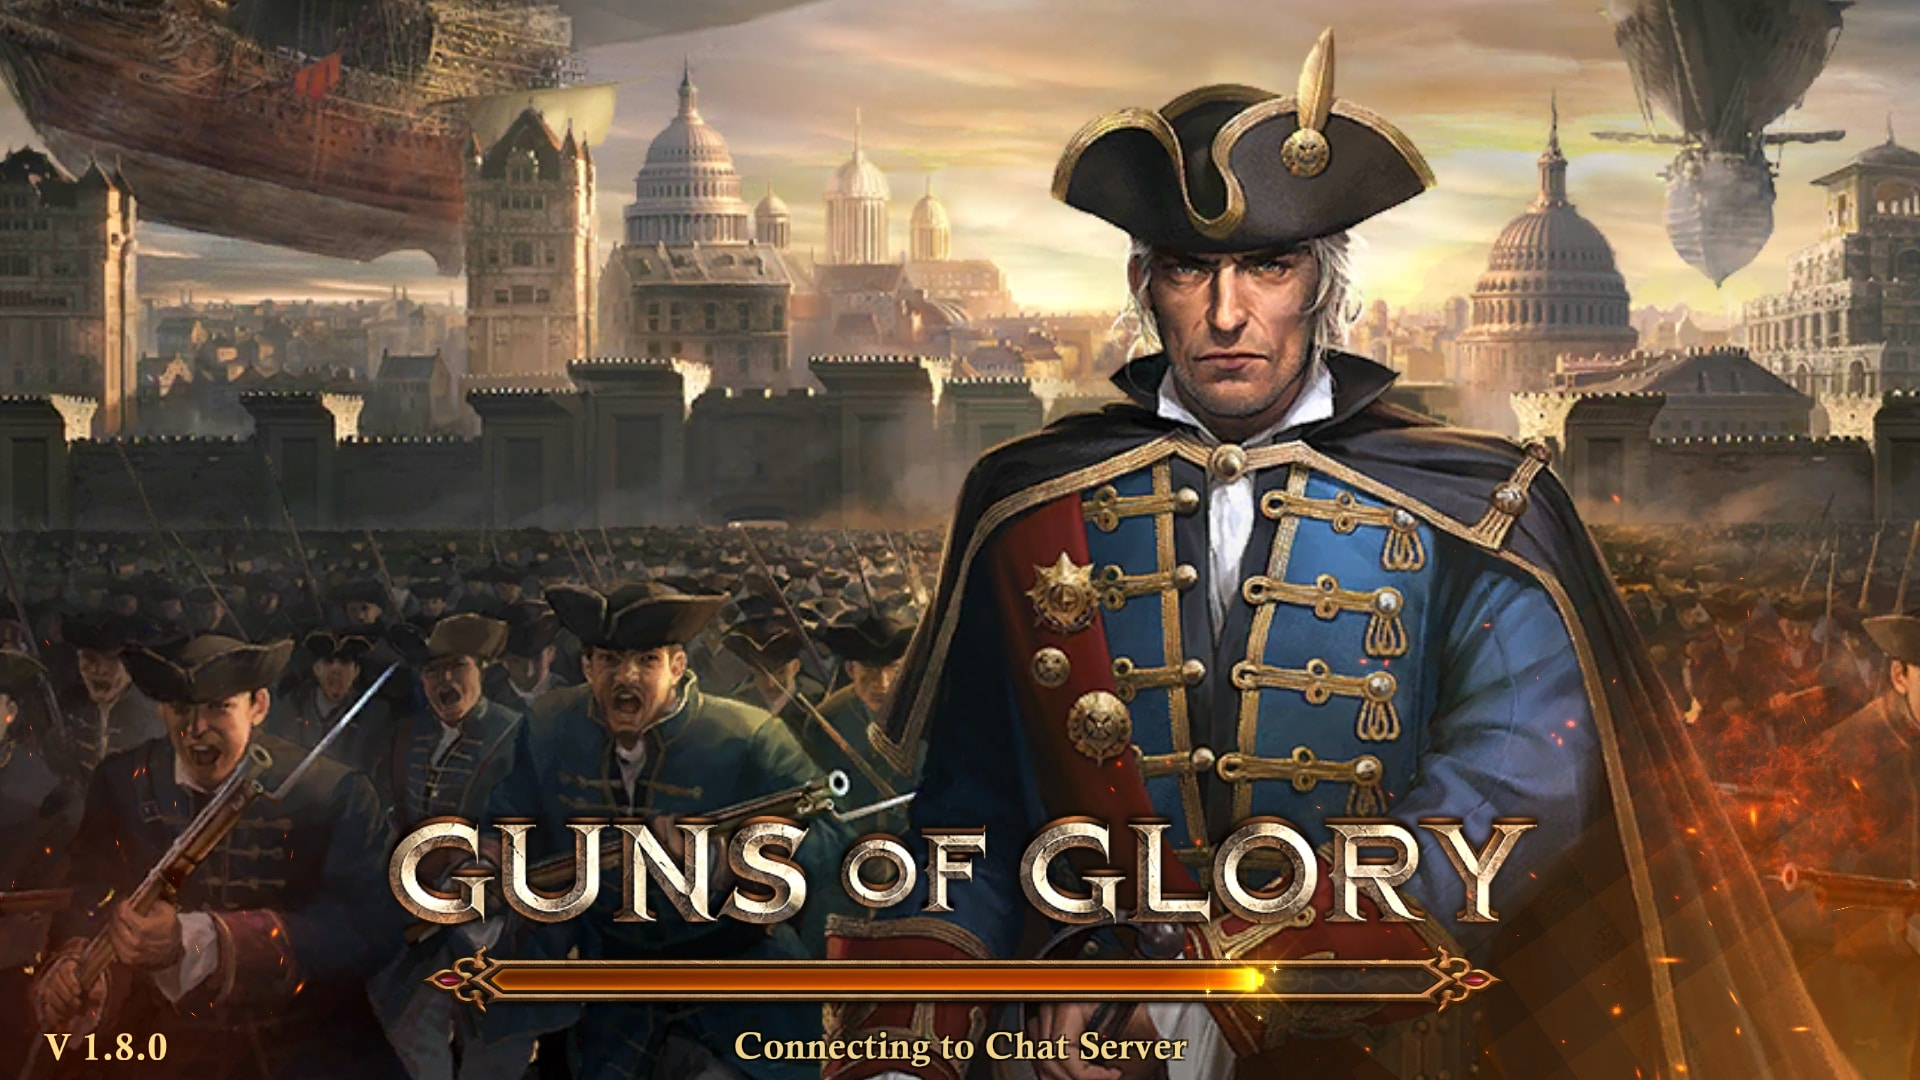 Download Guns of Glory APK- For Android and iOS 5